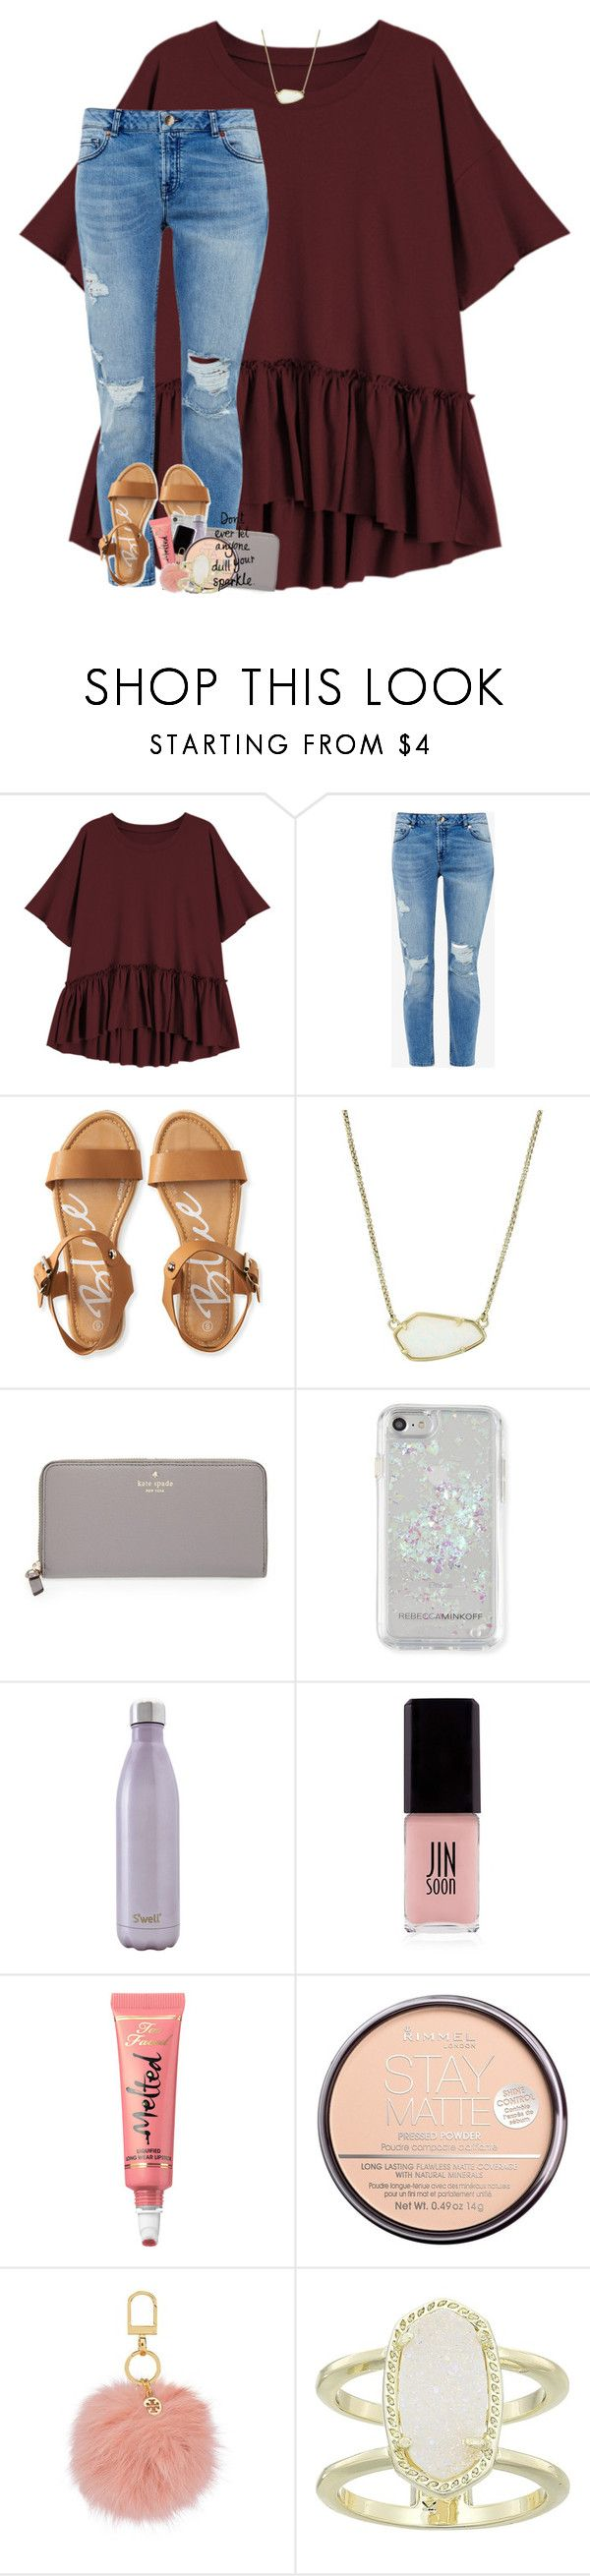 2K?!?! RTD!  by theblonde07 ❤ liked on Polyvore featuring Ted Baker, Aéropostale, Kendra Scott, Kate Spade, Rebecca Minkoff, Swell, JINsoon, Too Faced Cosmetics, Rimmel and Tory Burch